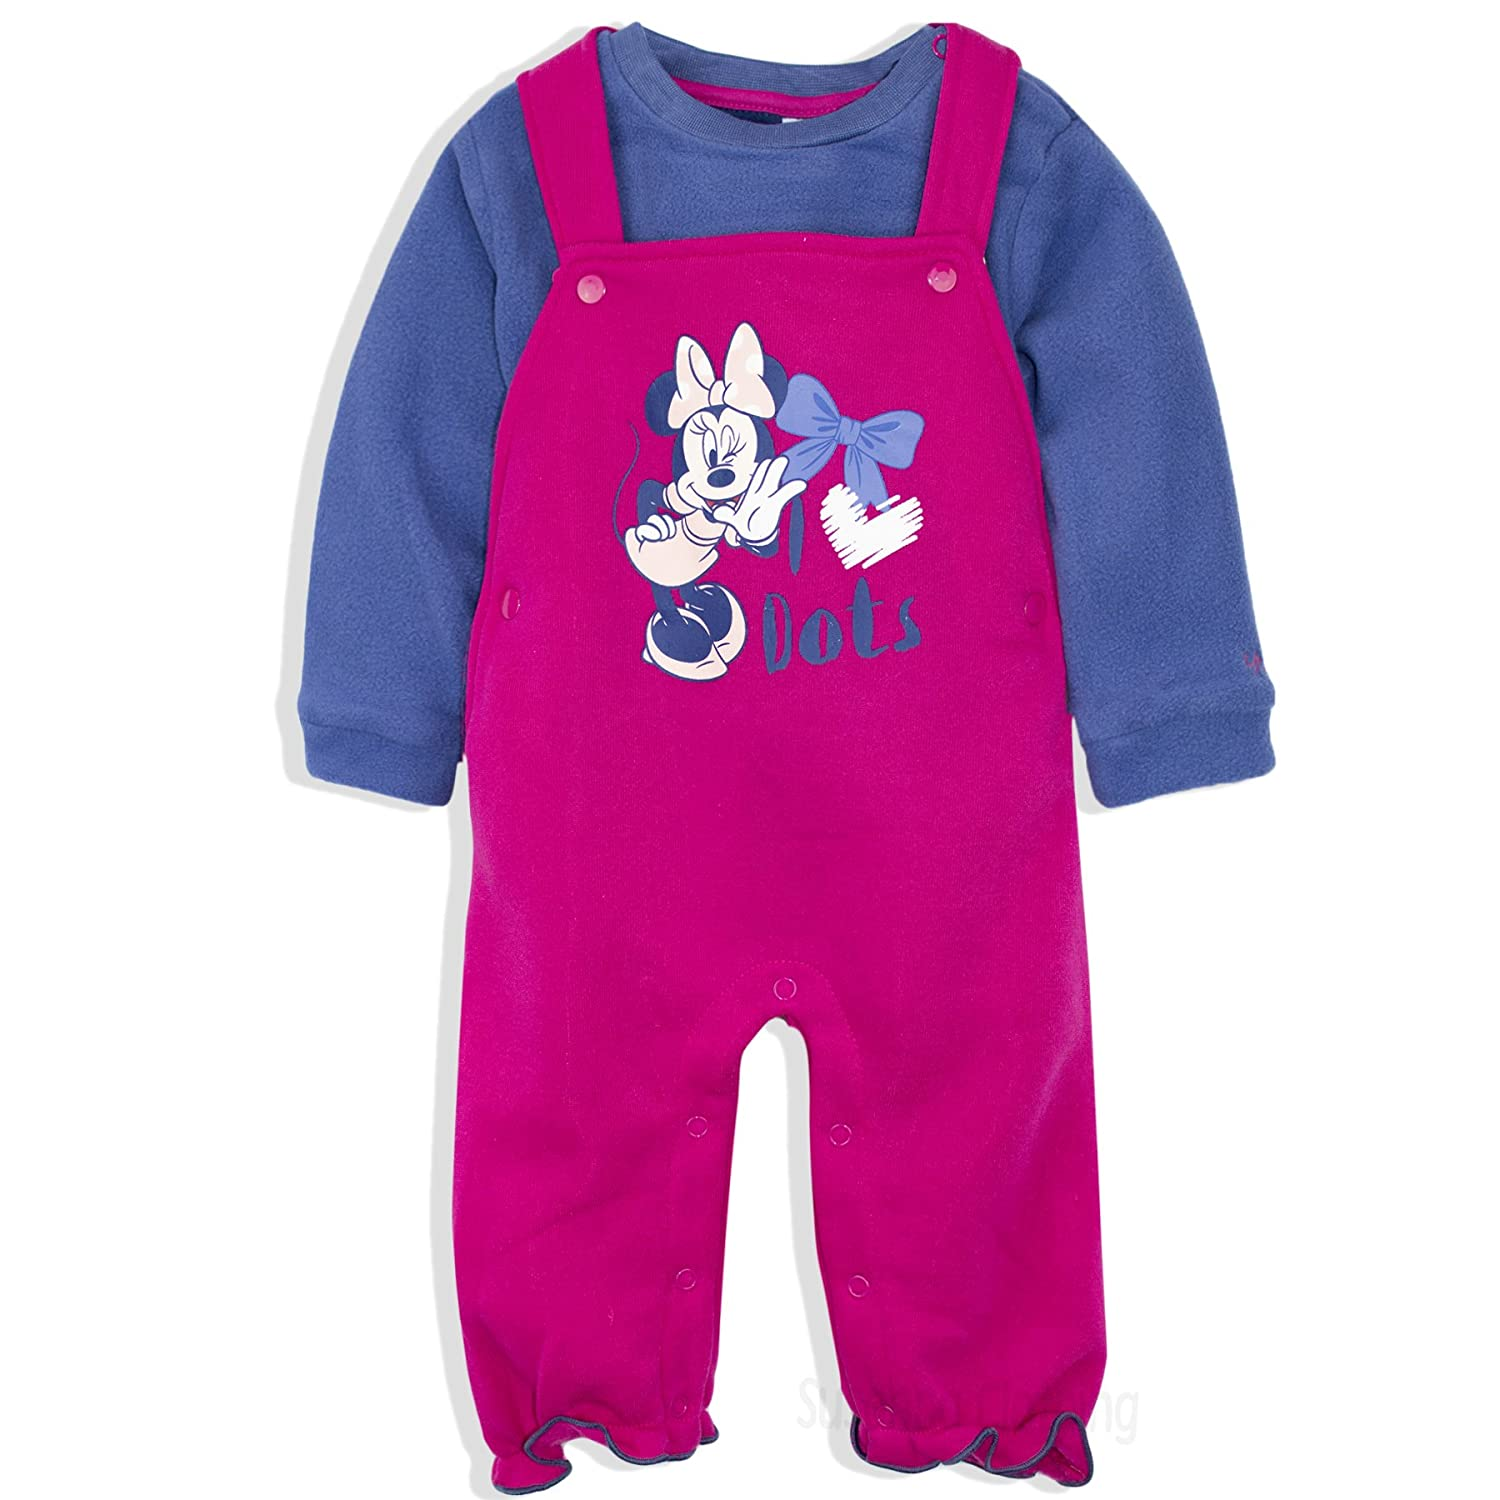 Disney Minnie Mouse Baby Girls Warm Outfit Set Dungarees + Long Sleeve Top Jumper 0-24 Months - New 2017/18 24260_118985